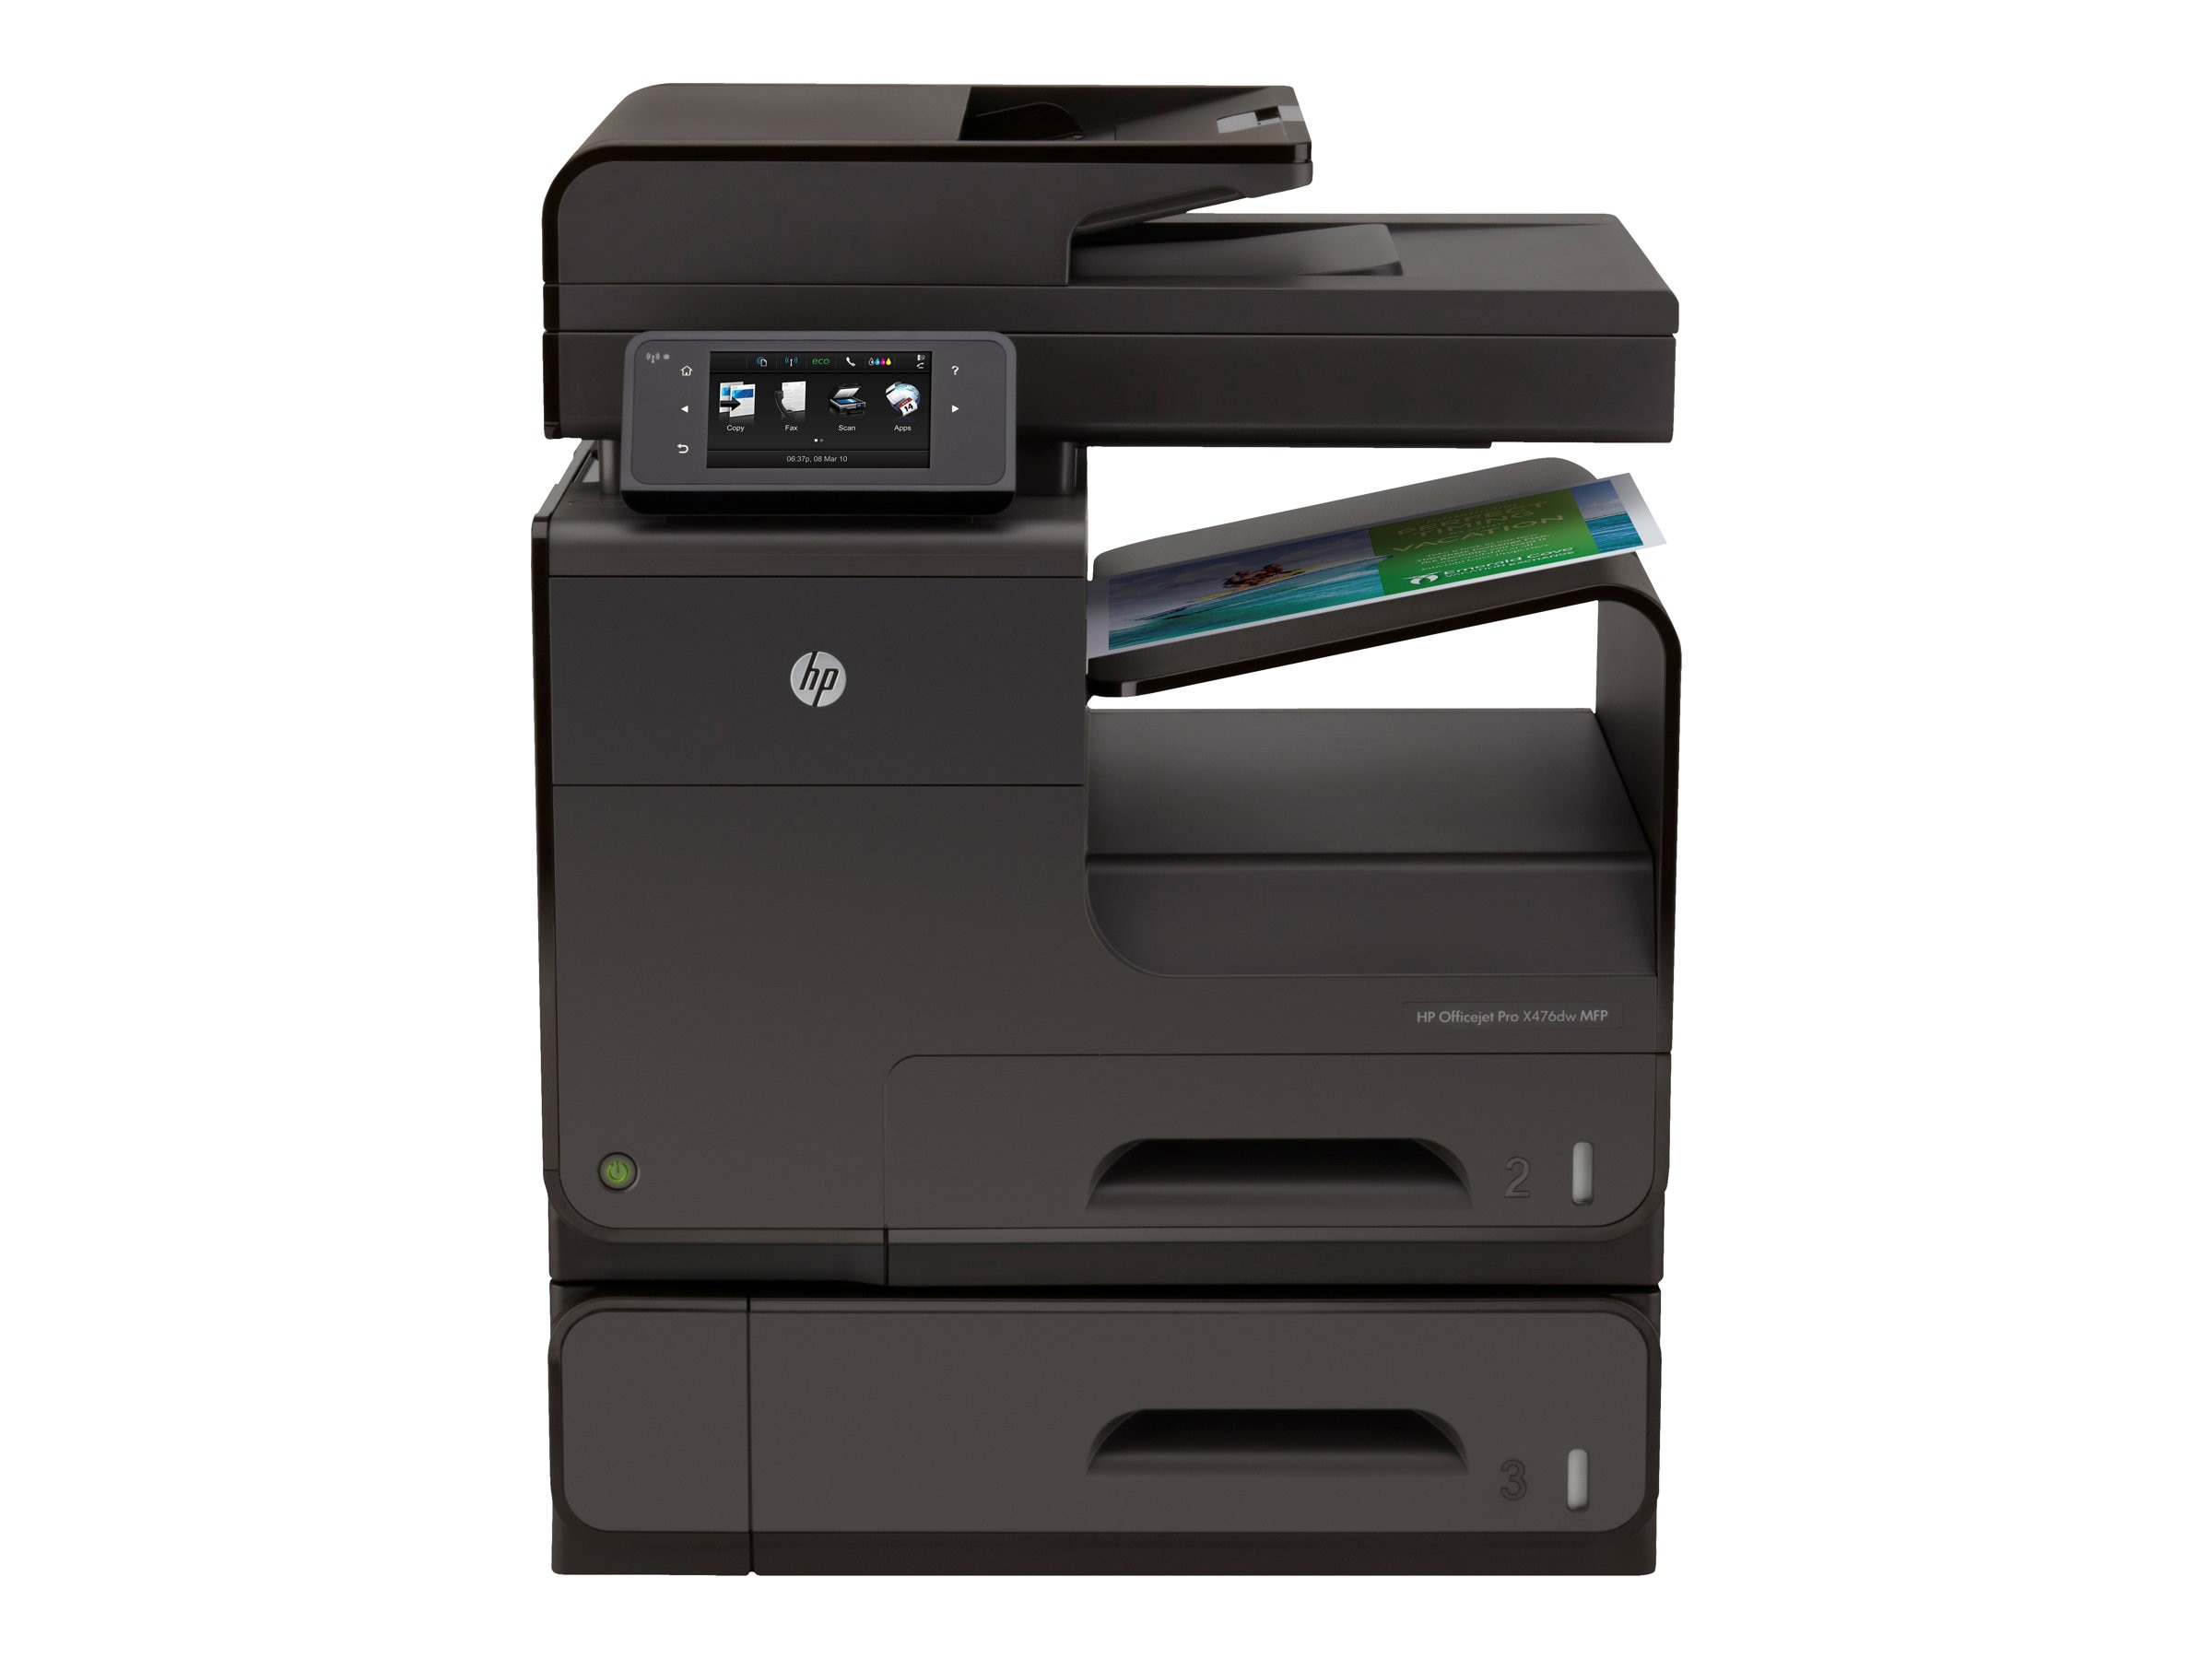 HP Officejet Pro X Series X 476dw Color MFP $699 - $200 instant rebate = $499 Ends 2 29 16, CN461A#B1H